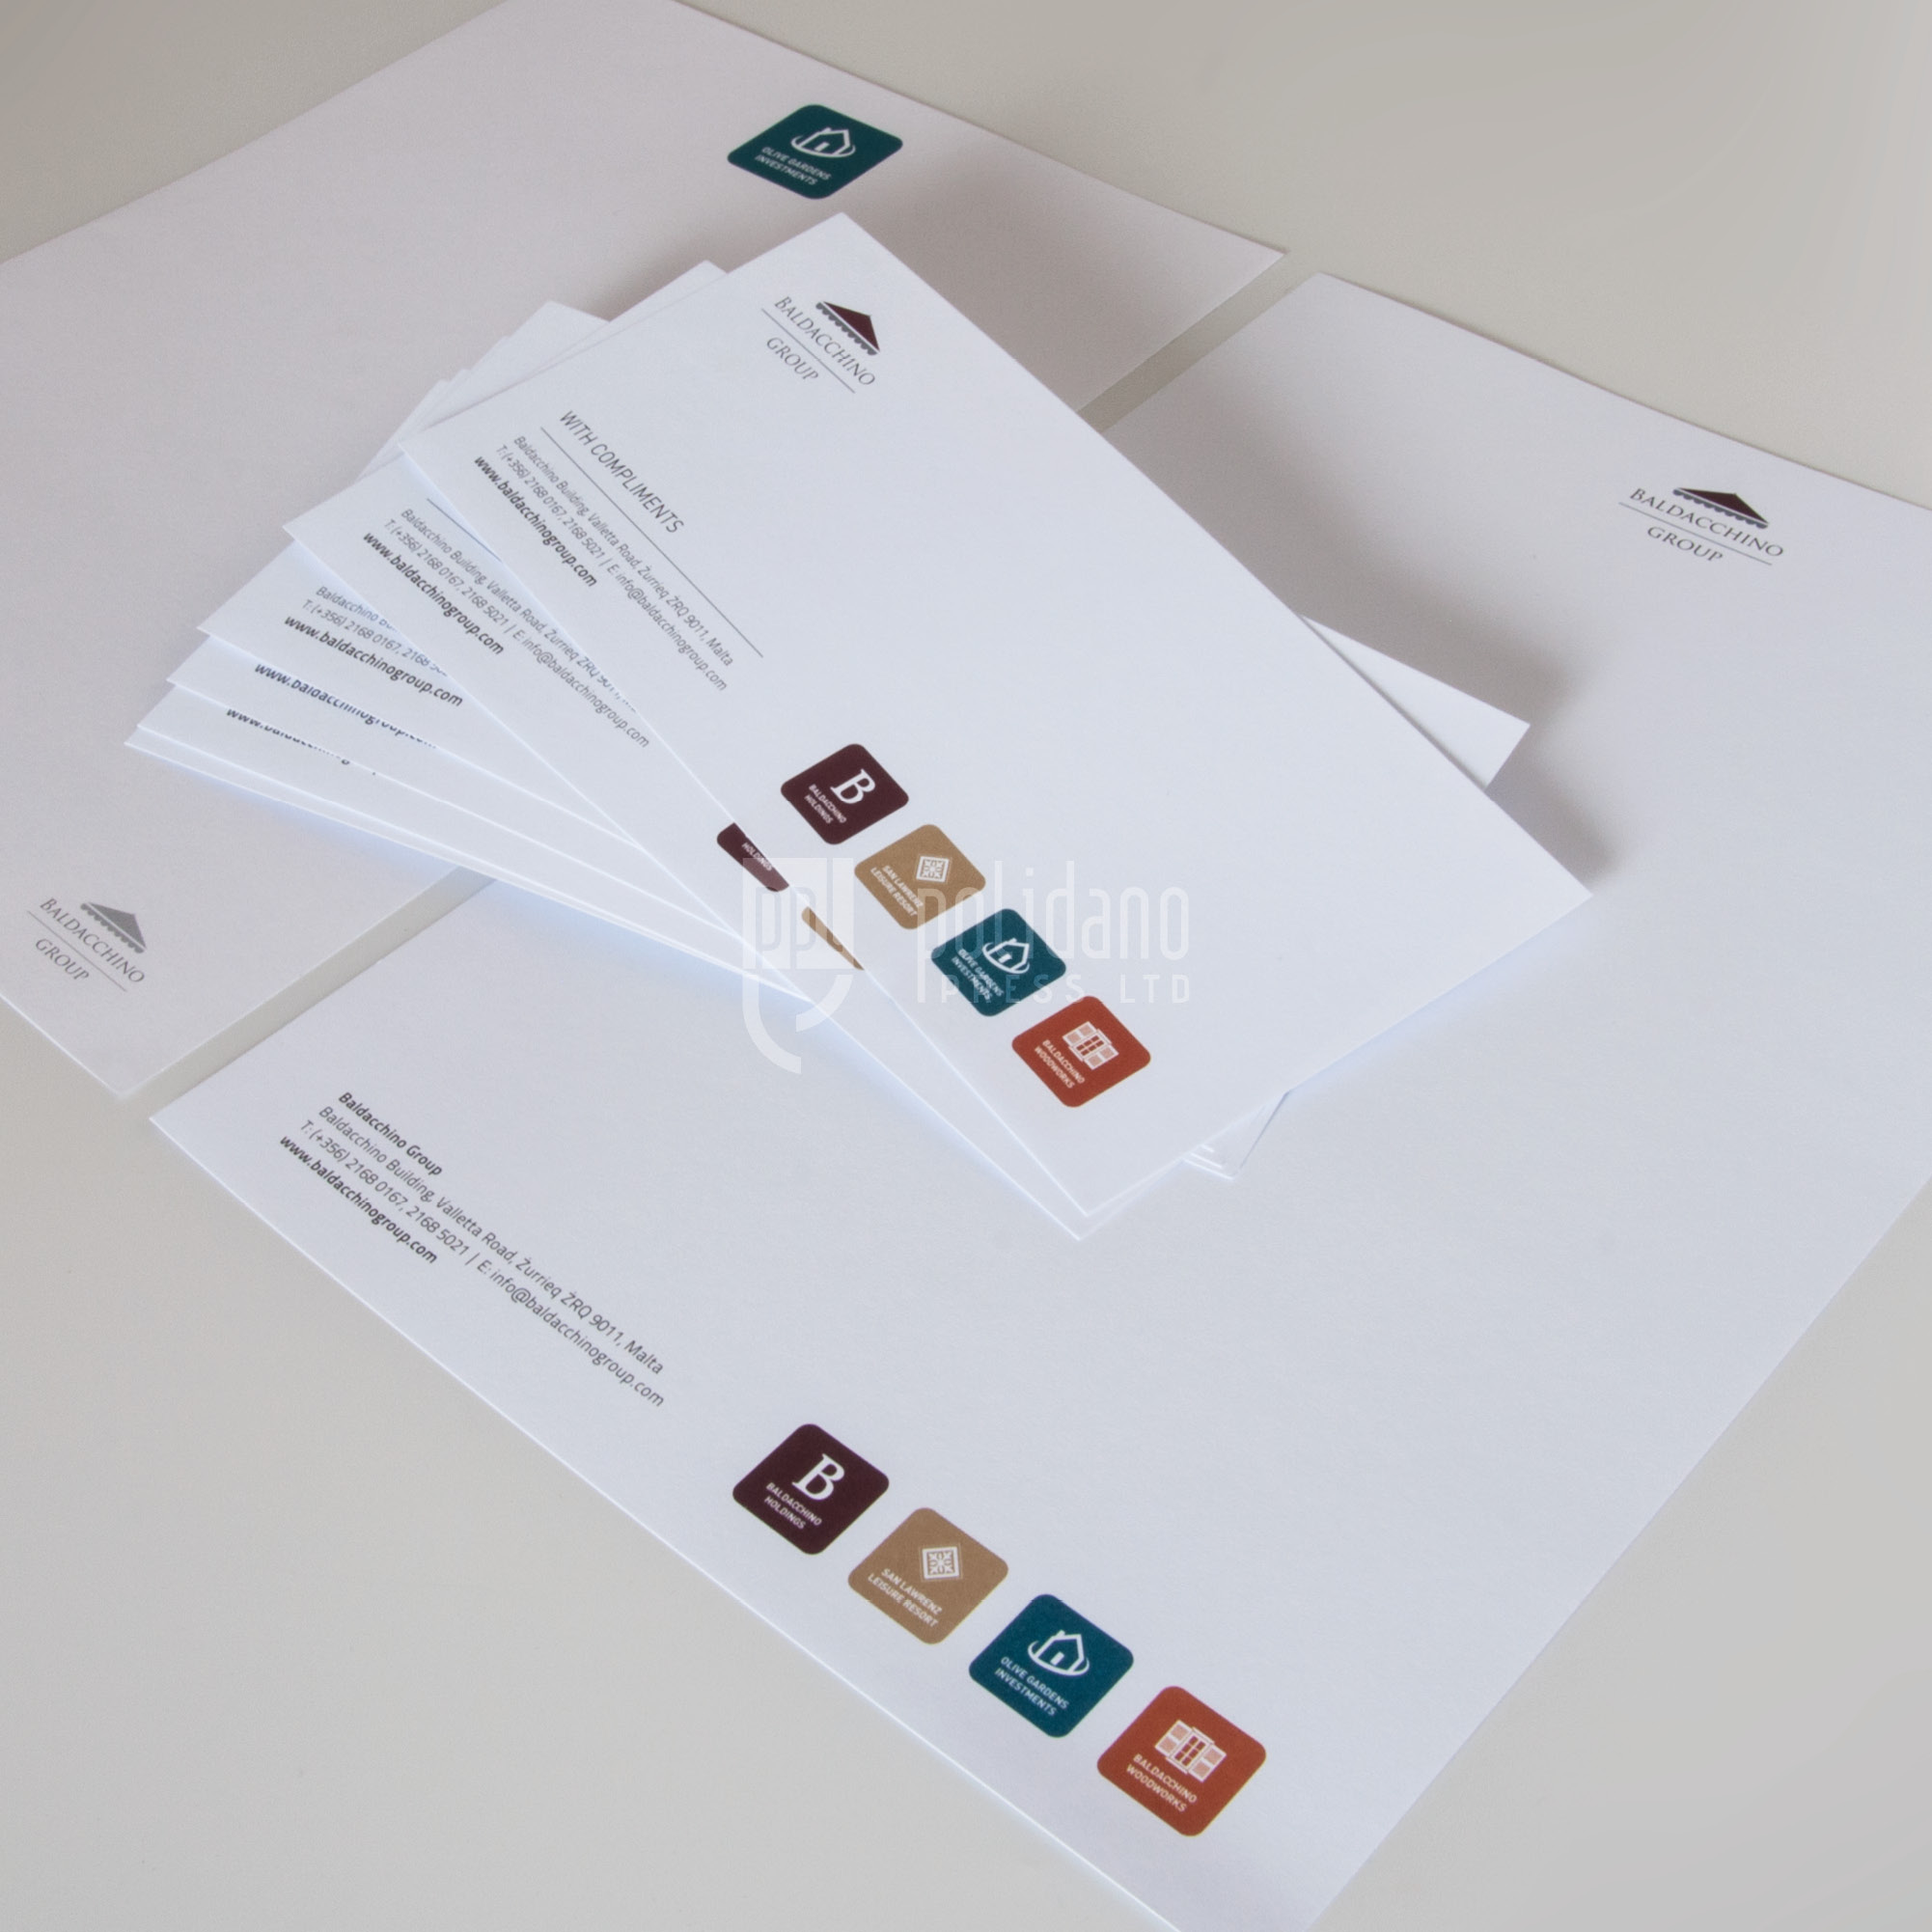 Baldacchino Group stationery